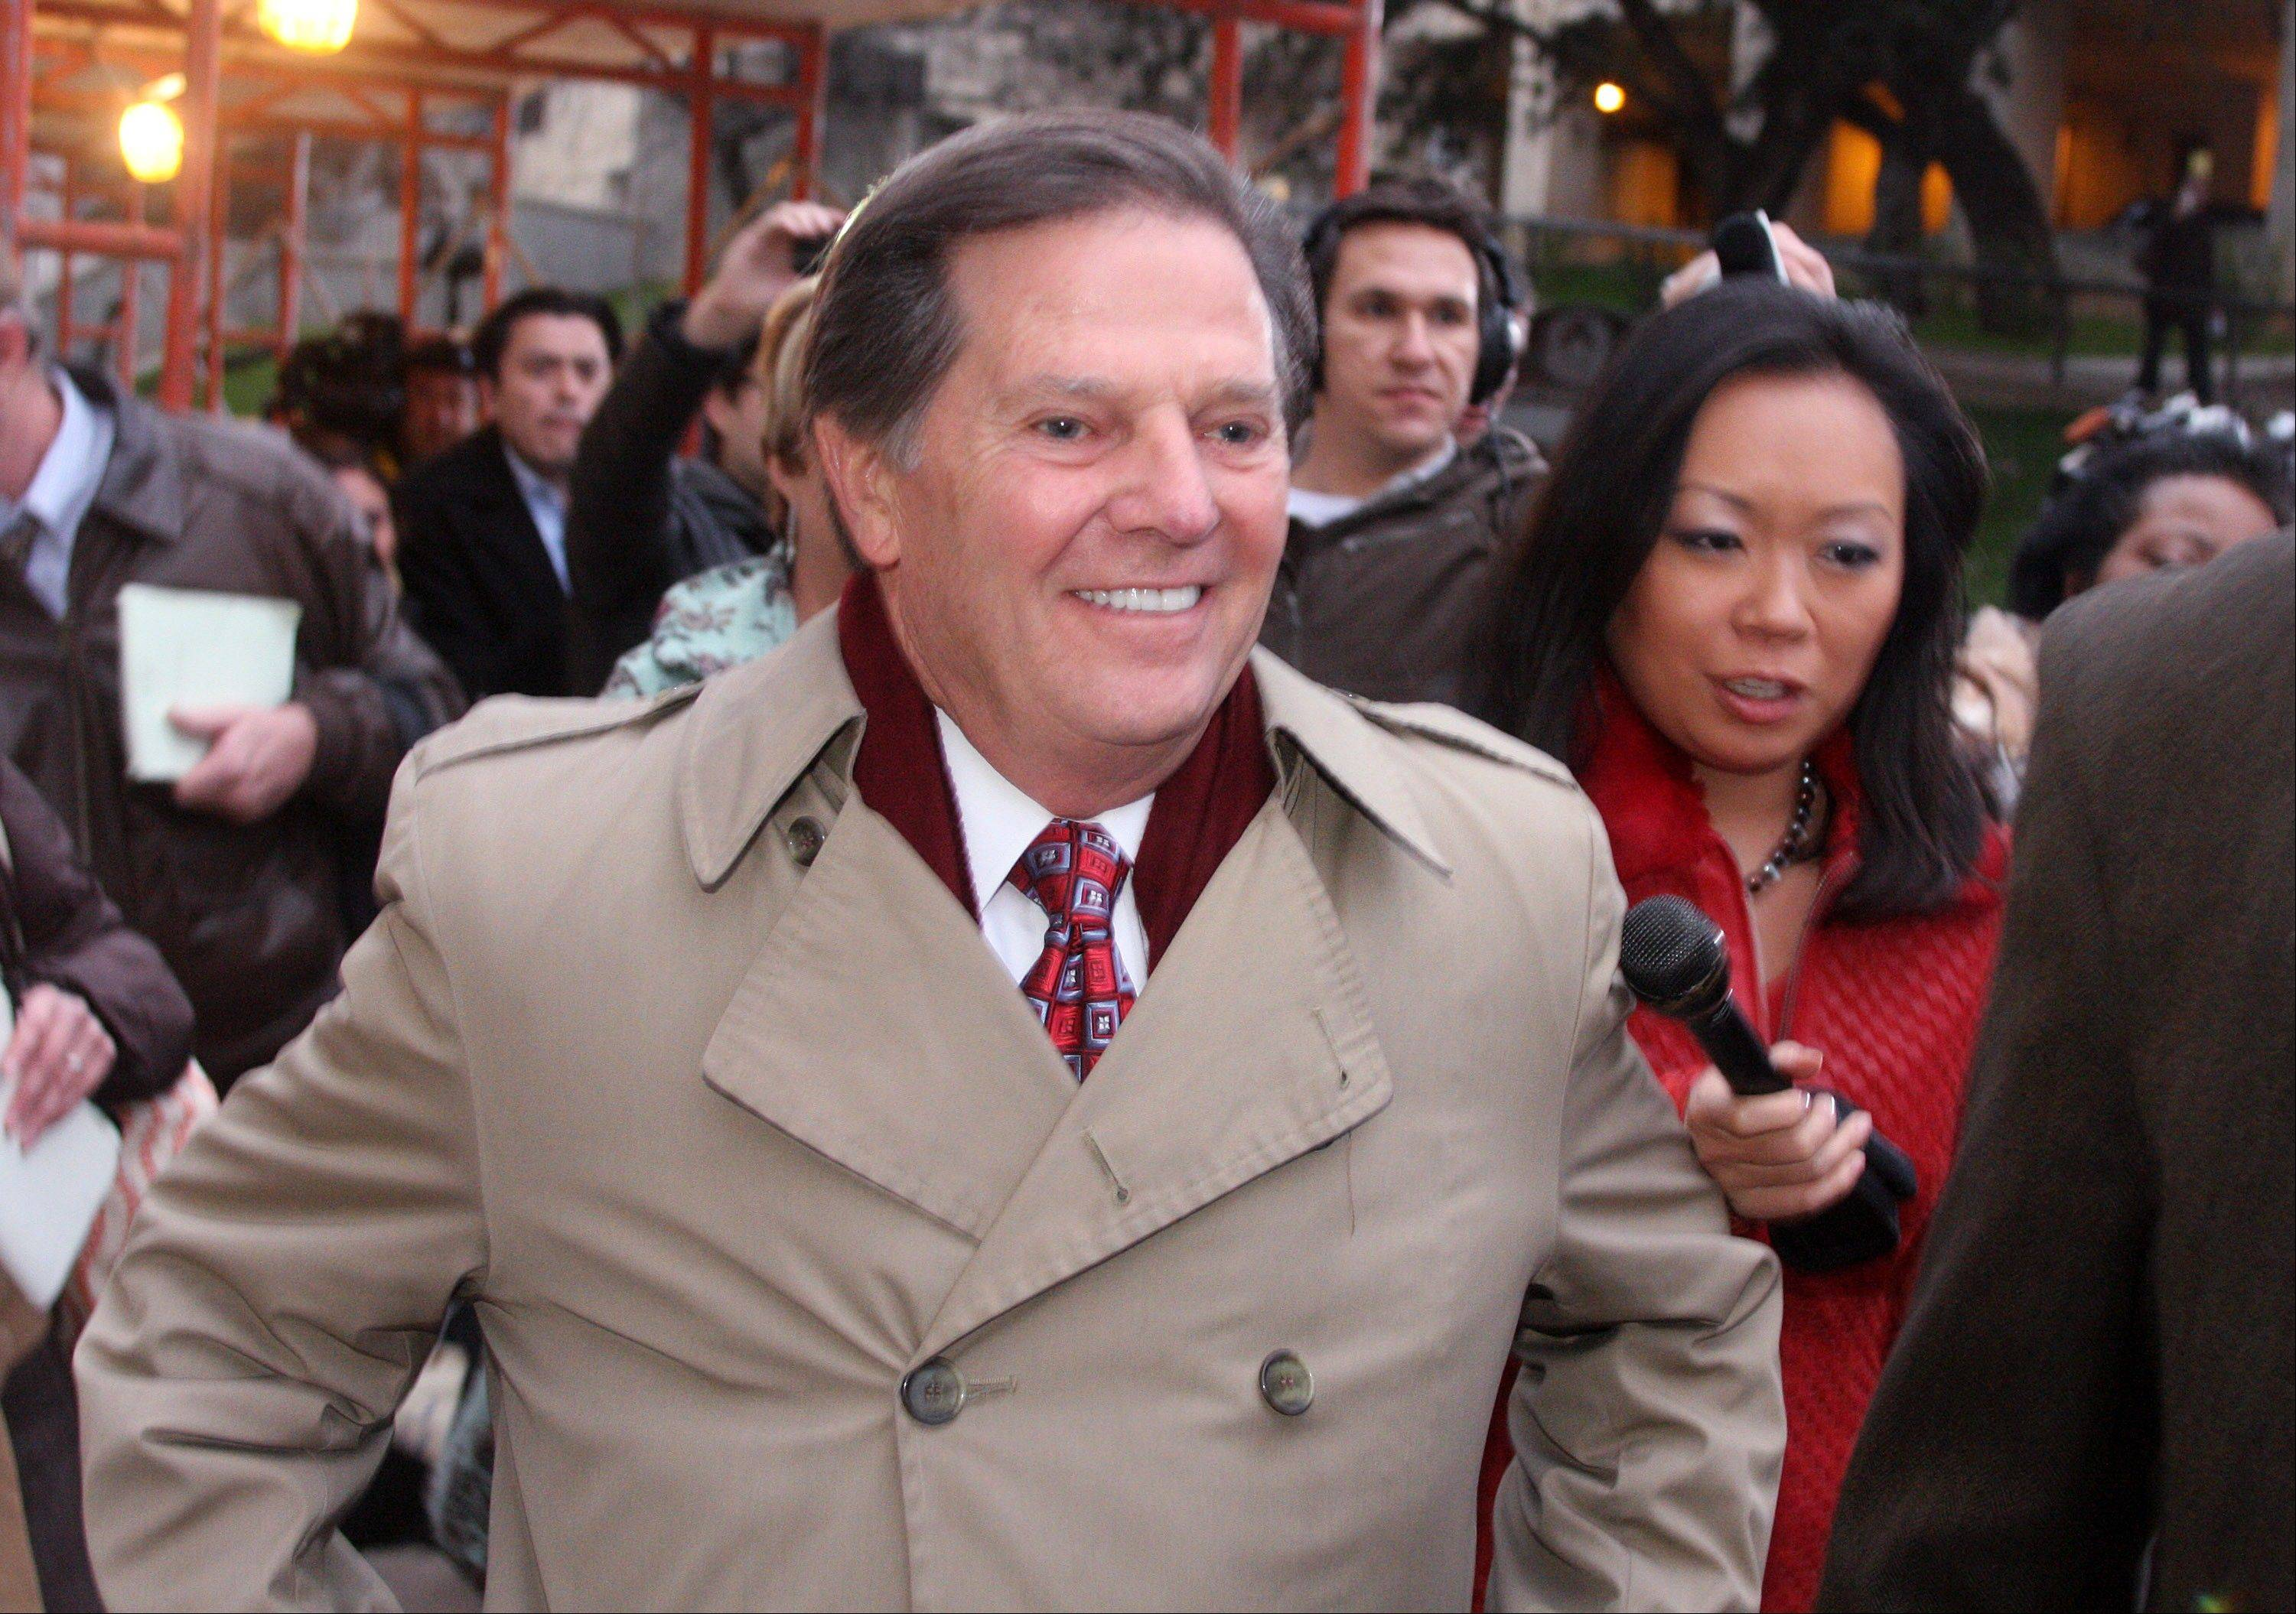 FILE - In this Jan. 10, 2011, file photo, Former House Majority Leader Tom DeLay leaves the Travis Co. Jail after posting an appeals bond in Austin, Texas. A Texas appeals court tossed the criminal conviction of DeLay on Thursday, Sept. 19, 2013, saying there was insufficient evidence for a jury in 2010 to have found him guilty of illegally funneling money to Republican candidates. (AP Photo/Jack Plunkett, File)